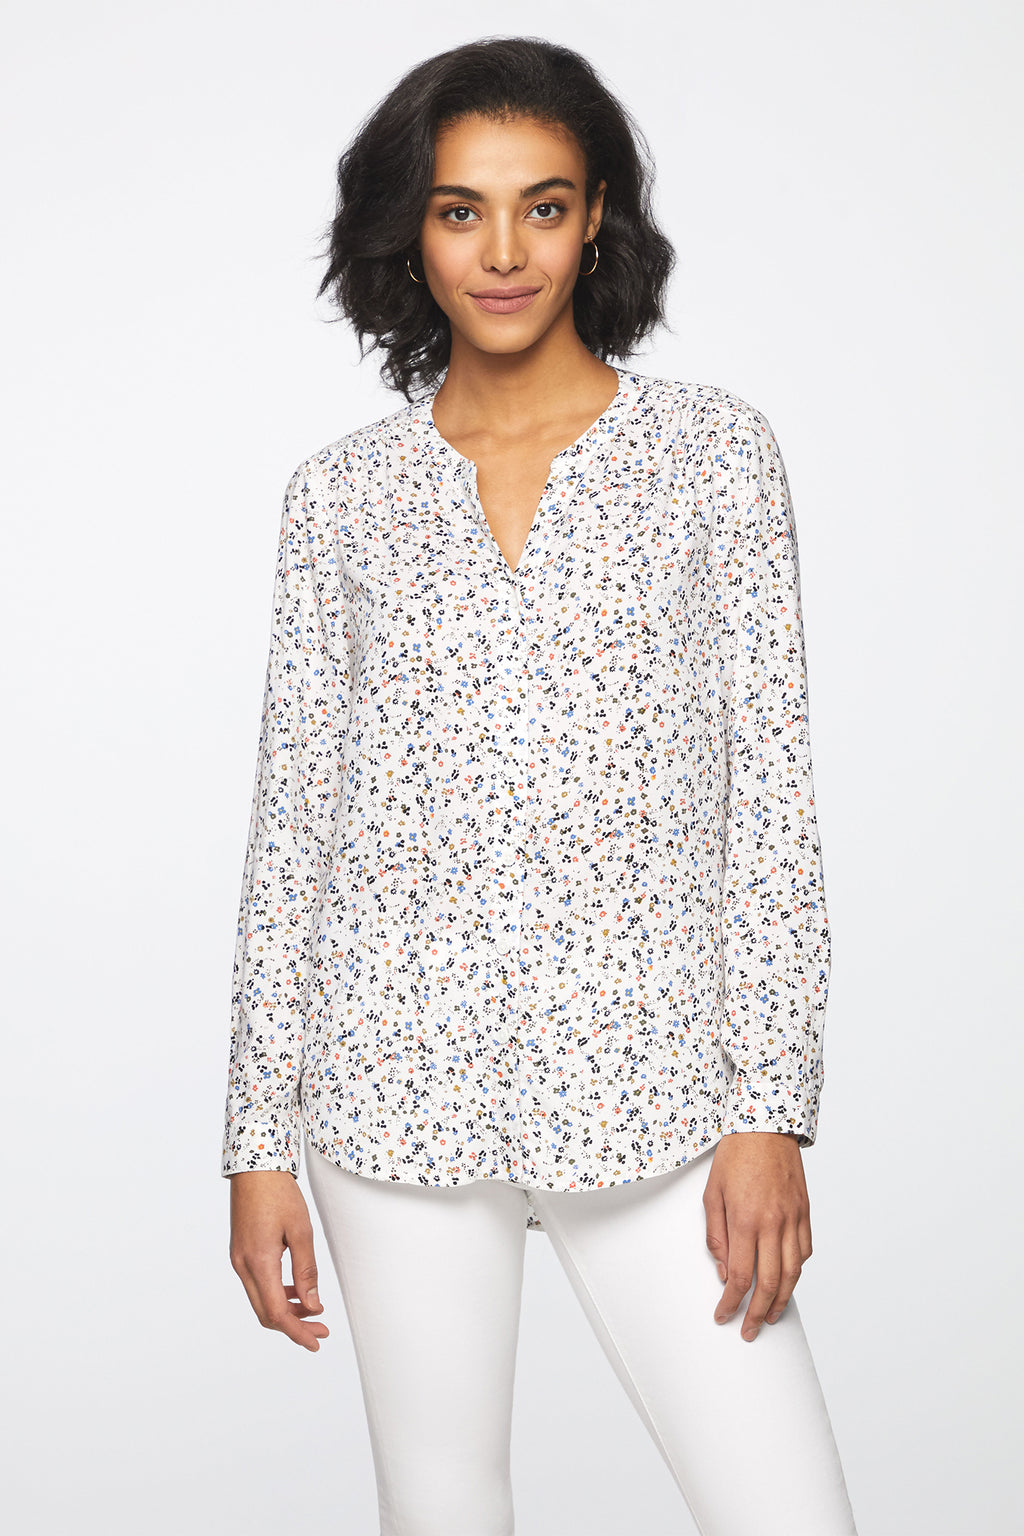 ANNINA SHIRT - SECRET GARDEN